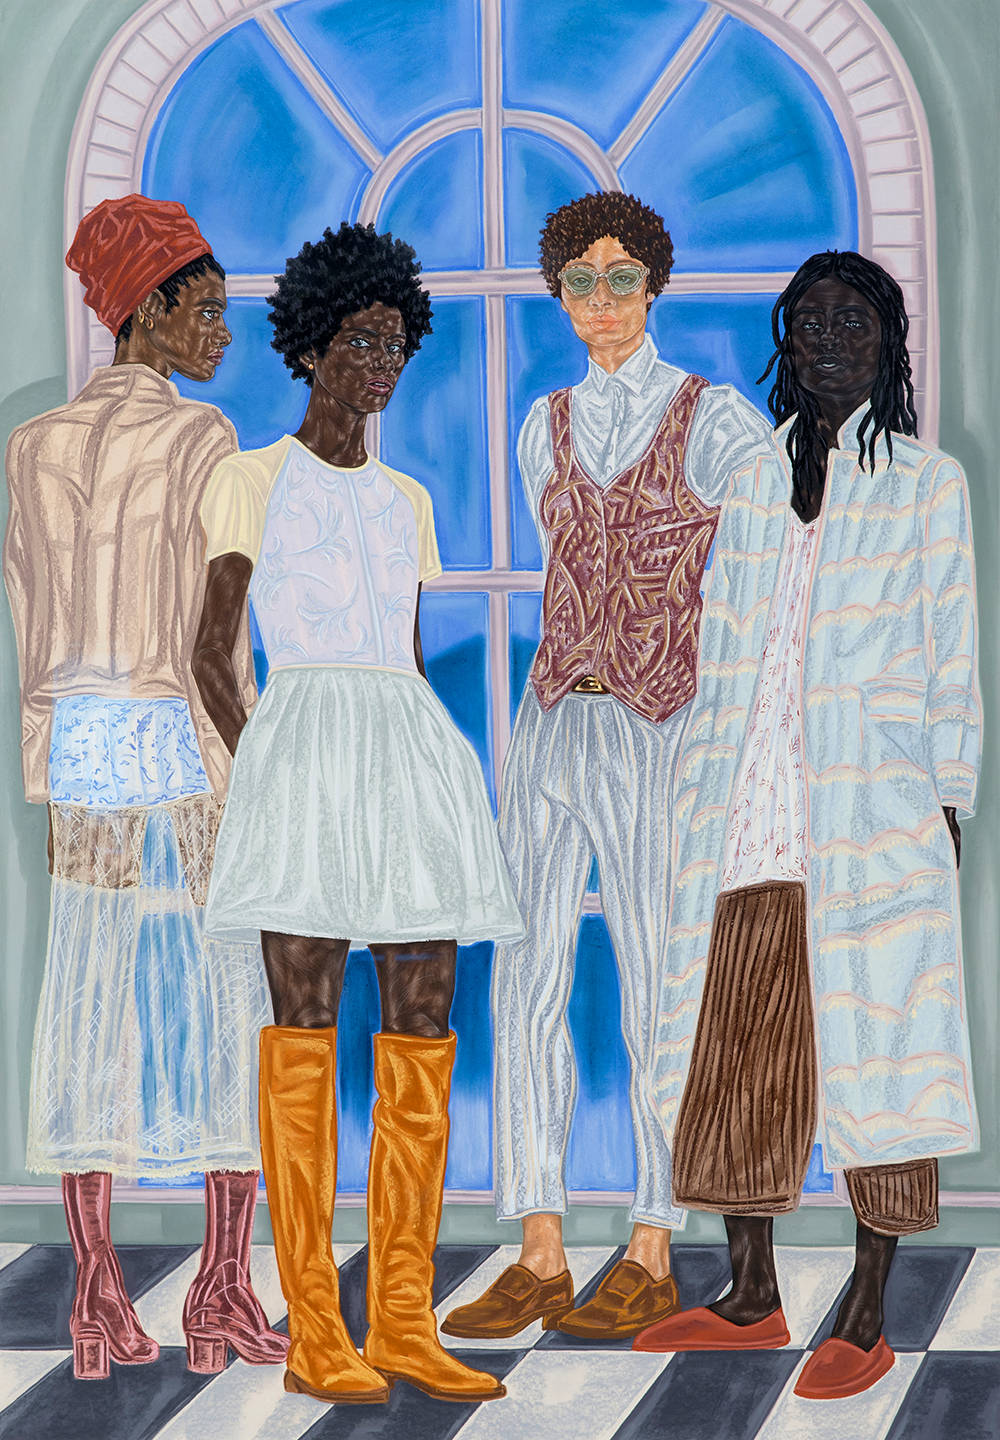 Toyin Ojih Odutola (b. 1985), Representatives of State, 2016-17